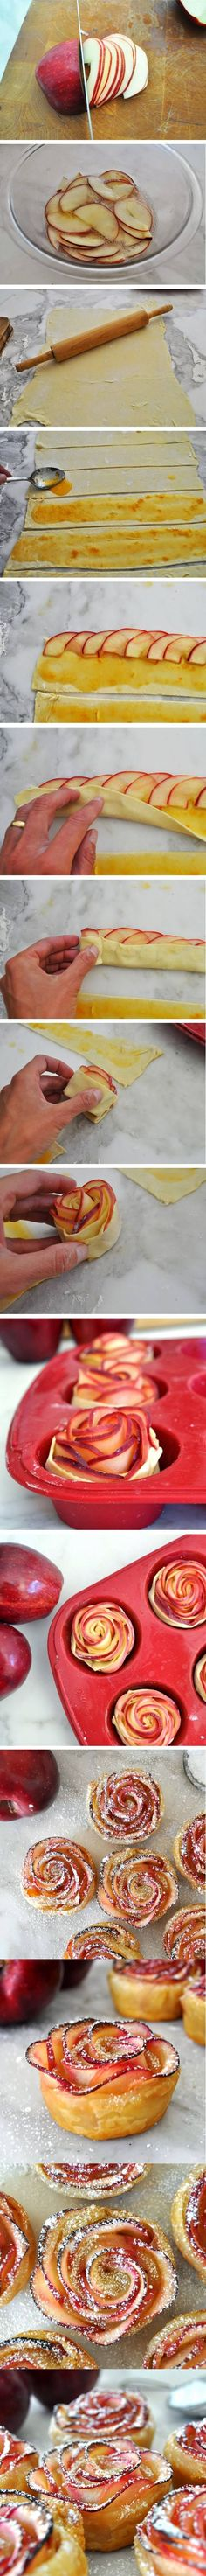 36 Best Ideas For Diy Food Dessert Apple Roses Delicious Desserts, Dessert Recipes, Yummy Food, Cooking Time, Cooking Recipes, Comida Diy, Enjoy Your Meal, Apple Roses, Cute Food